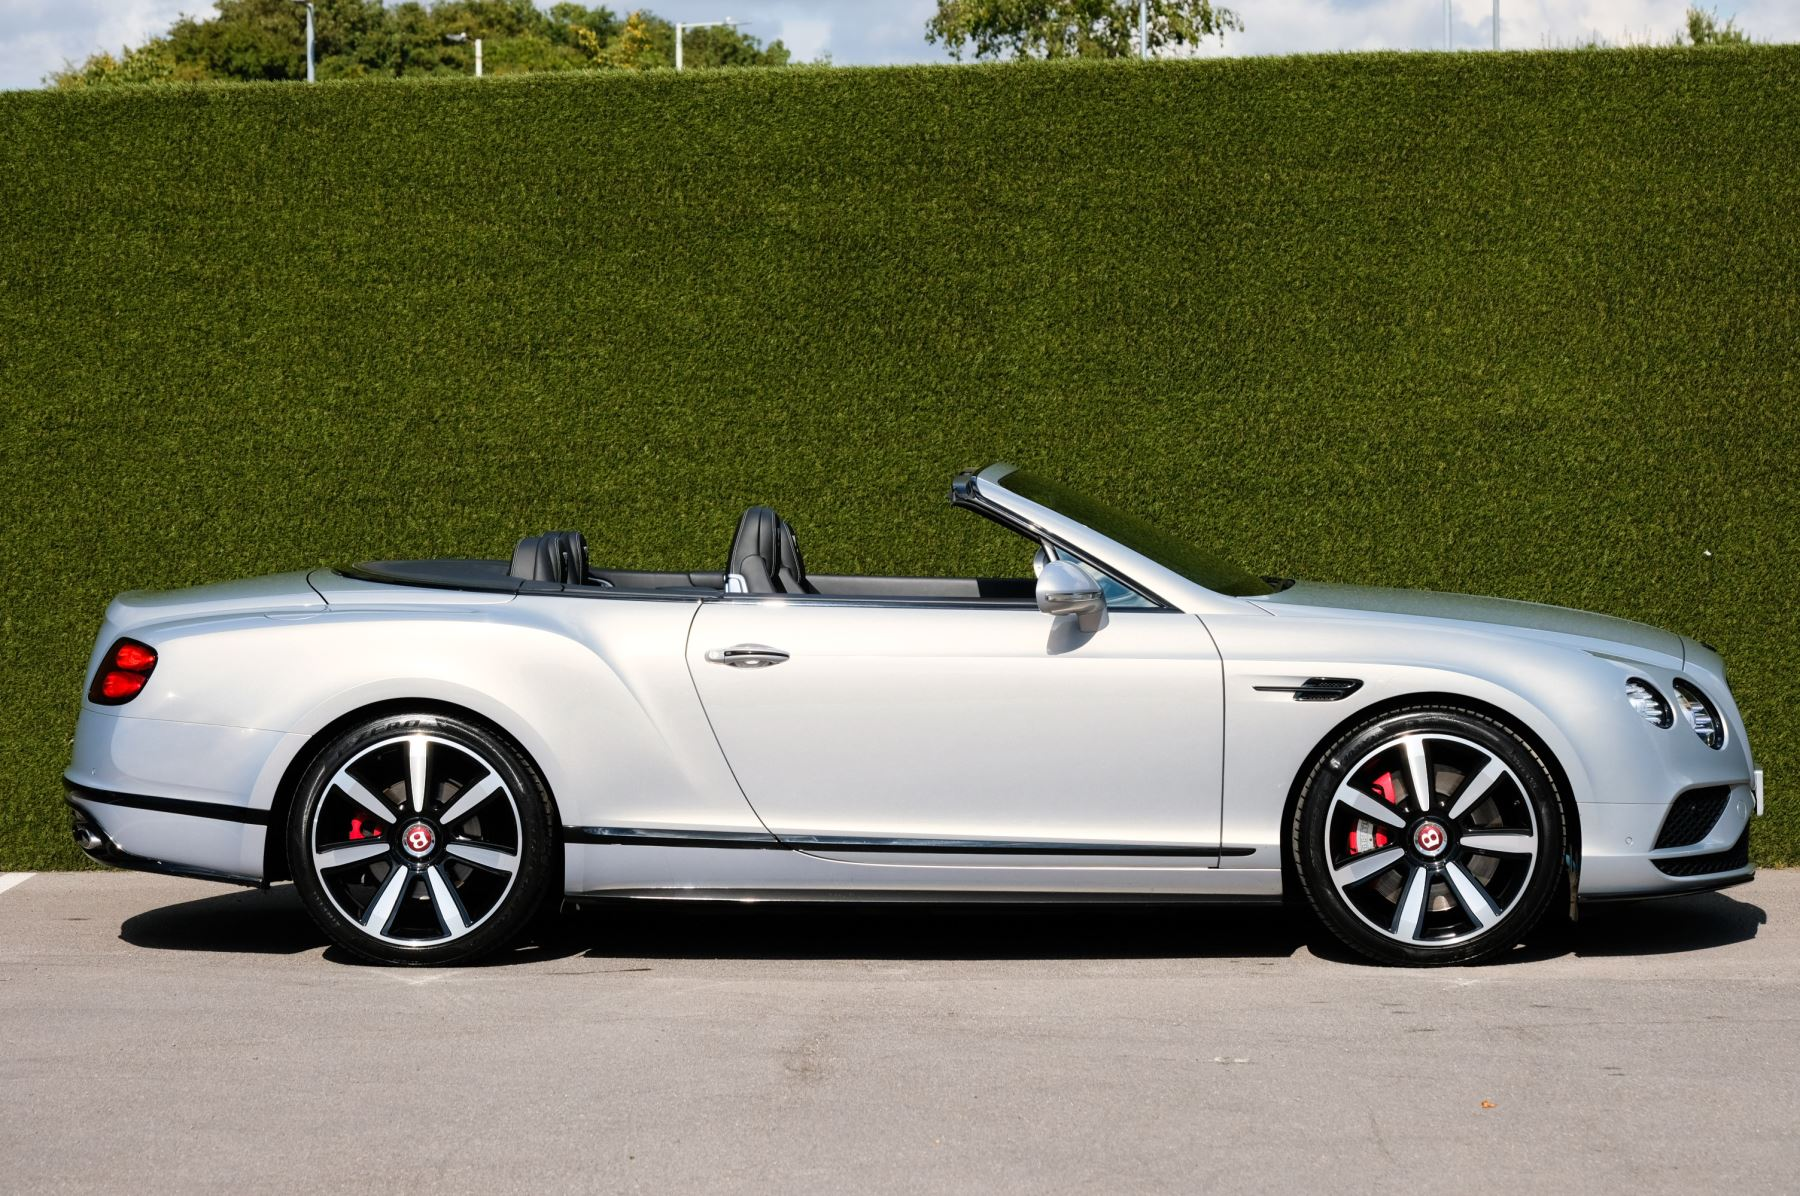 Bentley Continental GTC 4.0 V8 S Mulliner Driving Spec - Ventilated Front Seats with Massage Function image 3